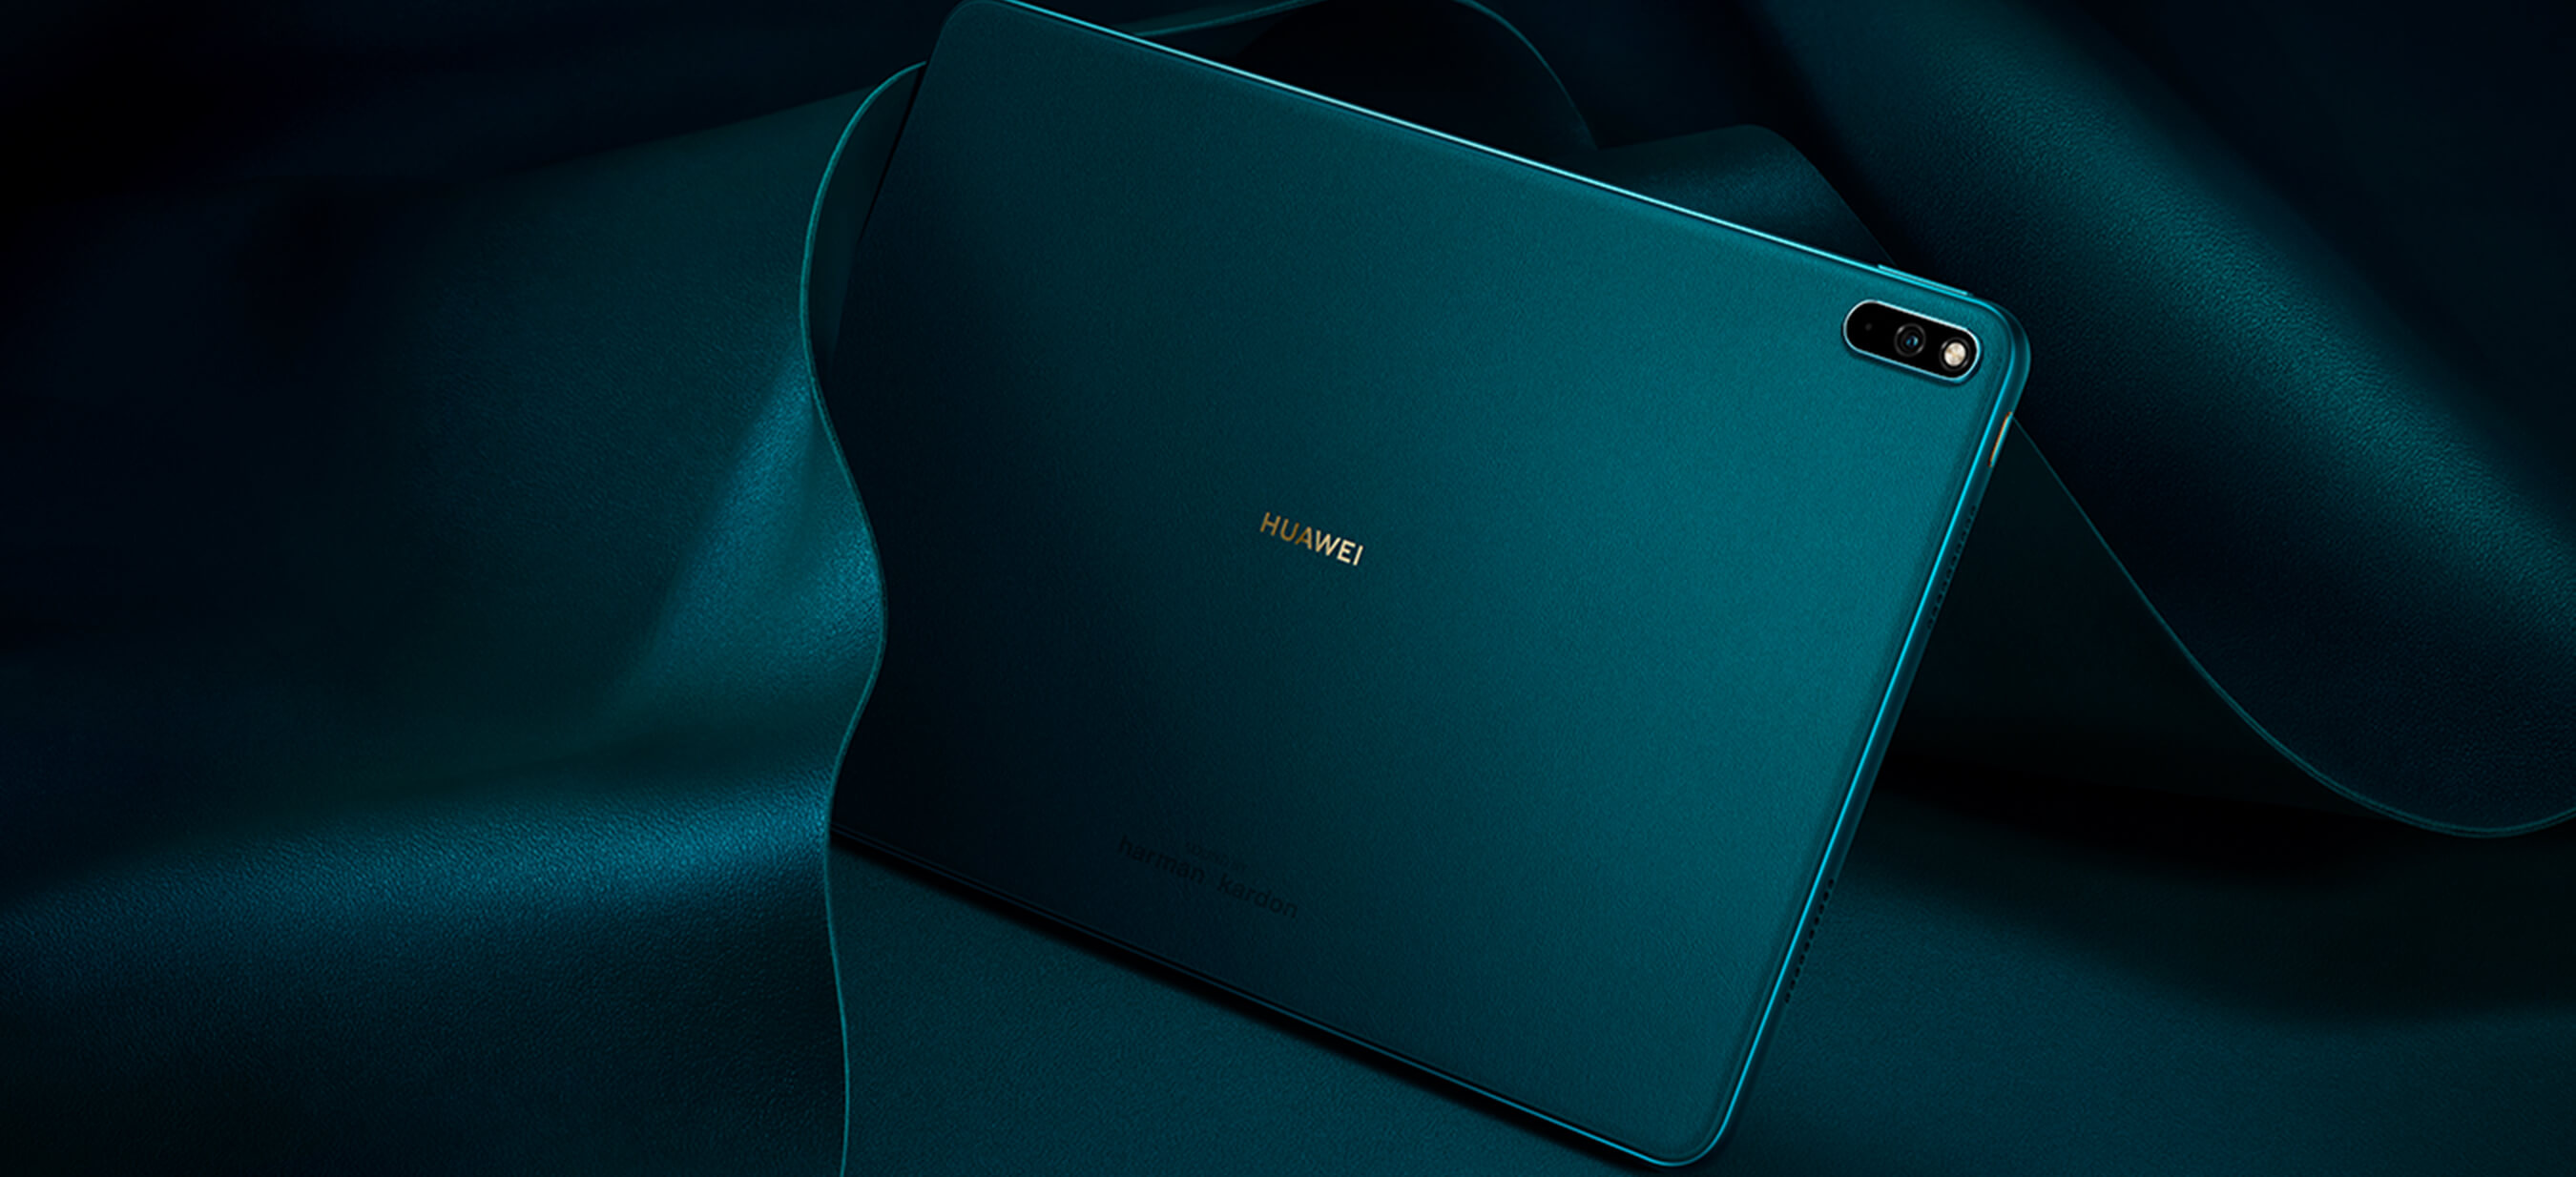 huawei matepad pro color green